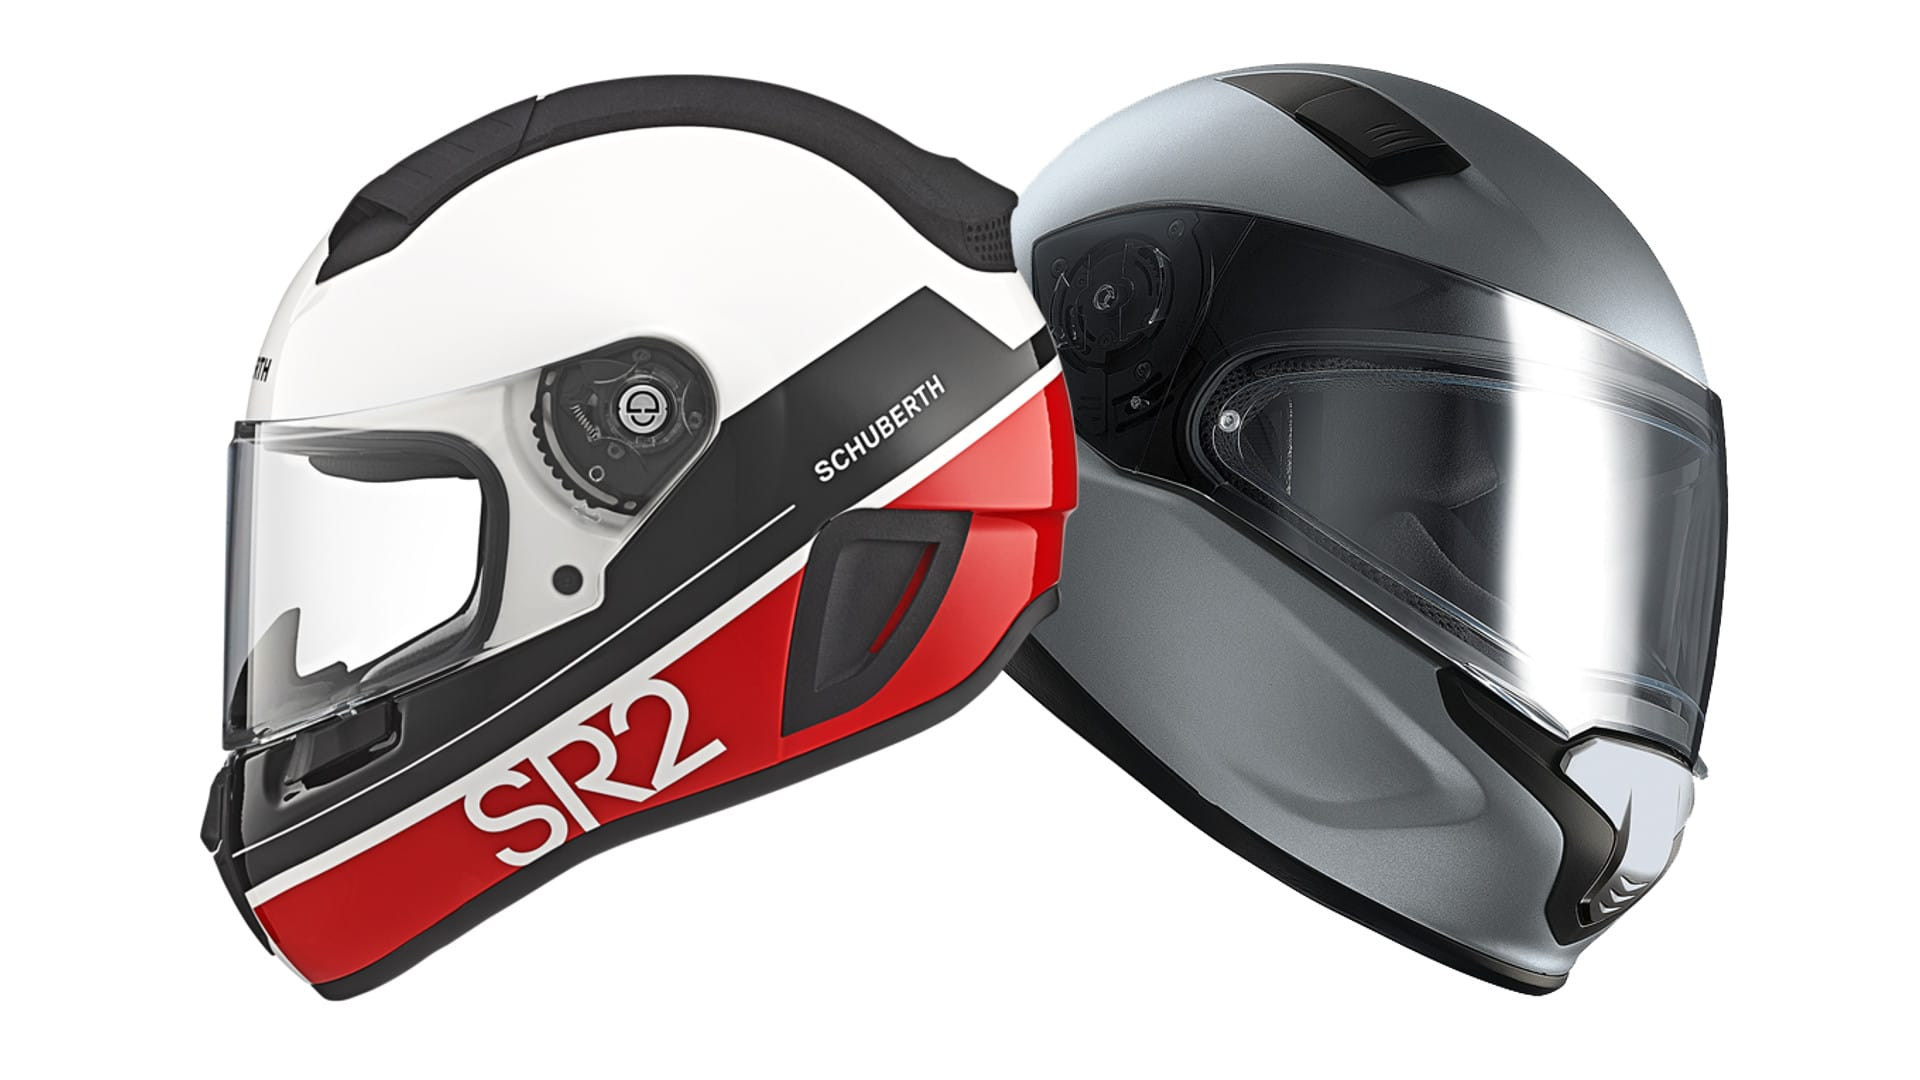 Two European ECE 22.05 standard helmets